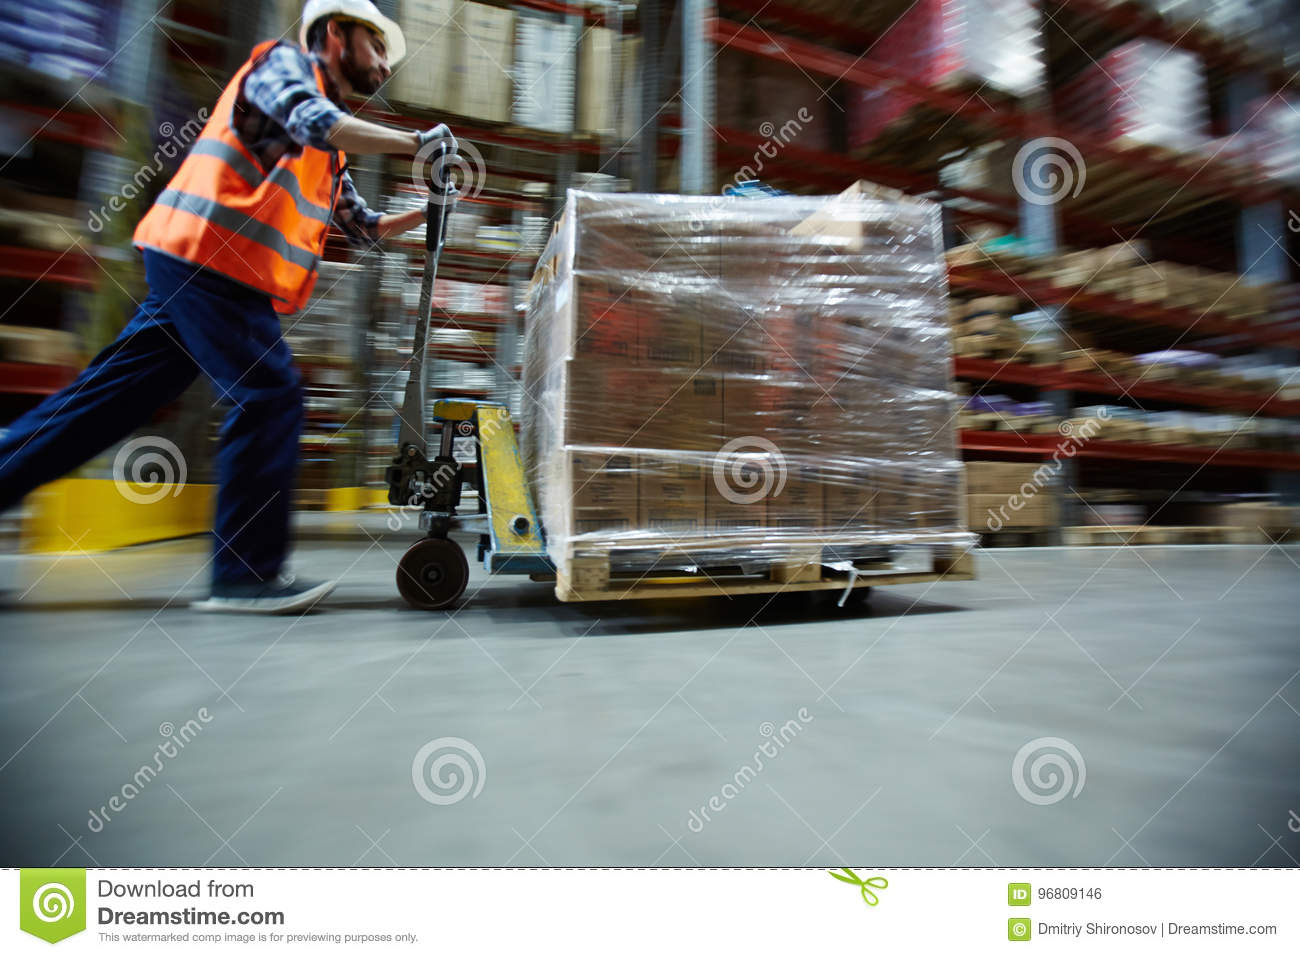 Worker Moving Retail Merchandise in Large warehouse